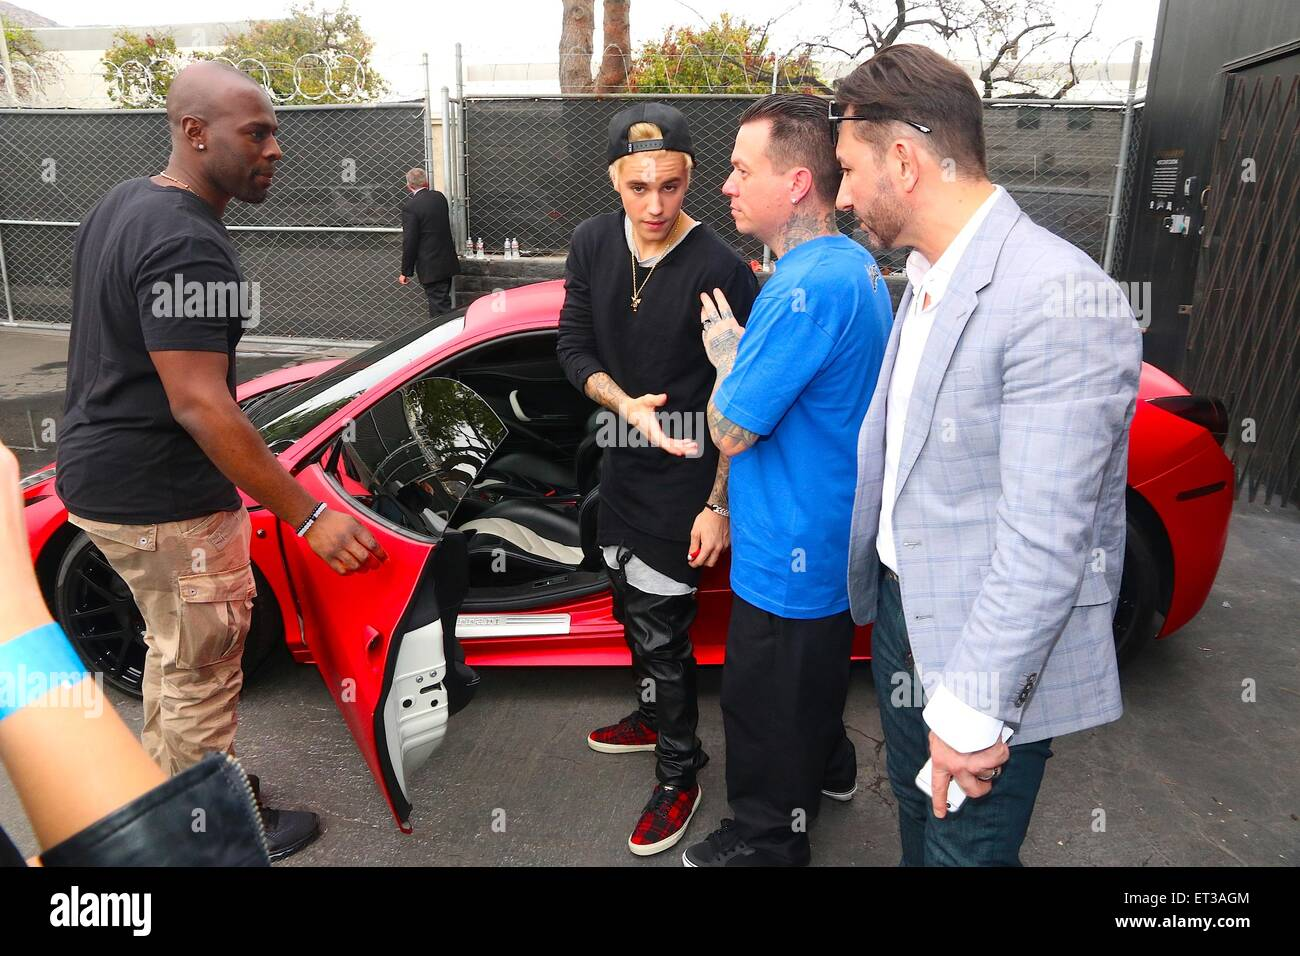 justin bieber meets fans at west coast customs empire takeover auto stock photo 83667380 alamy. Black Bedroom Furniture Sets. Home Design Ideas